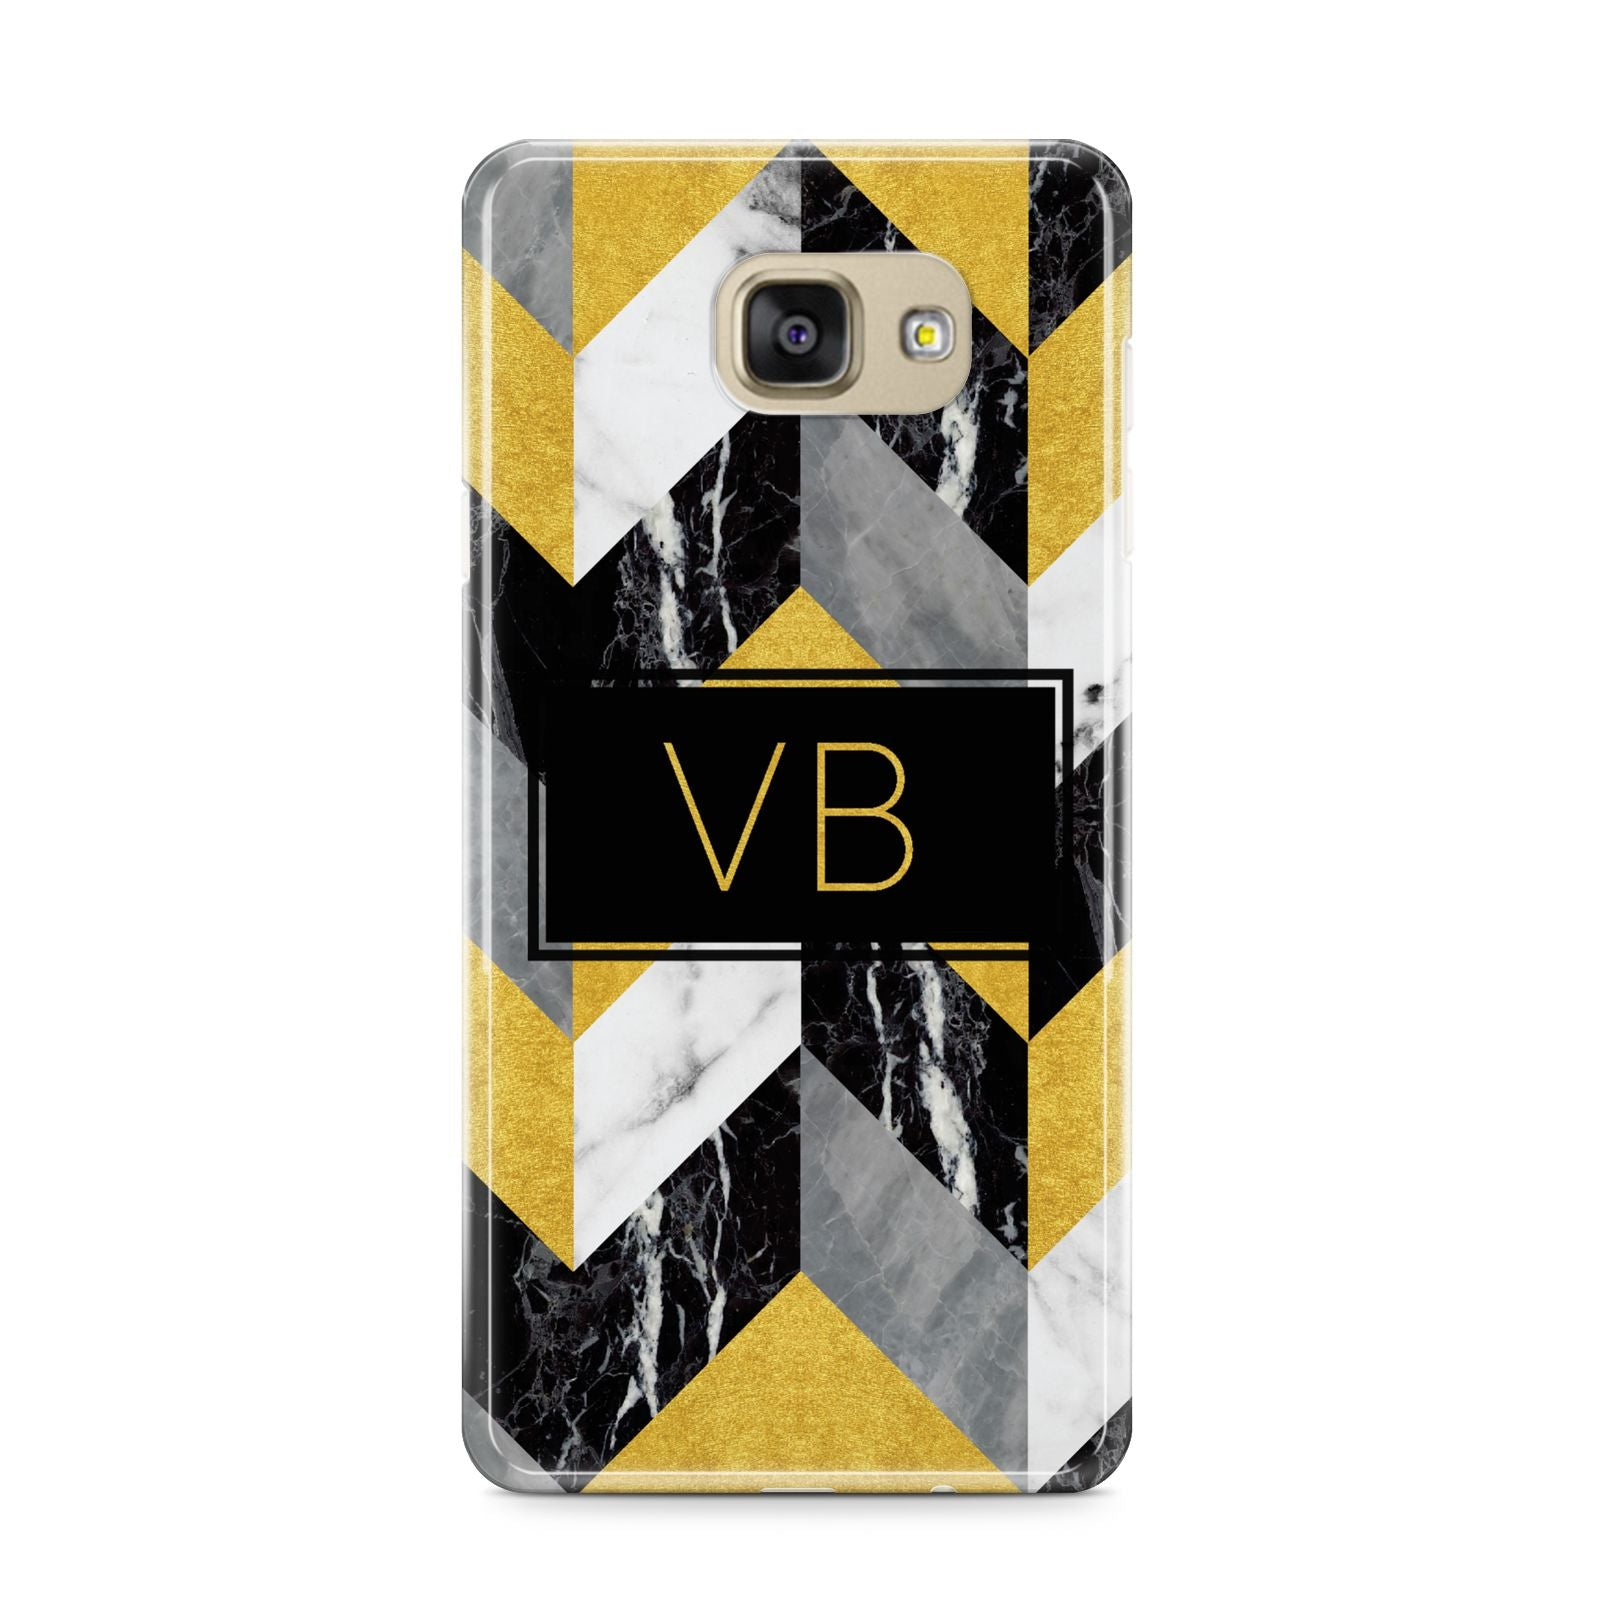 Personalised Marble Effect Initials Samsung Galaxy A9 2016 Case on gold phone